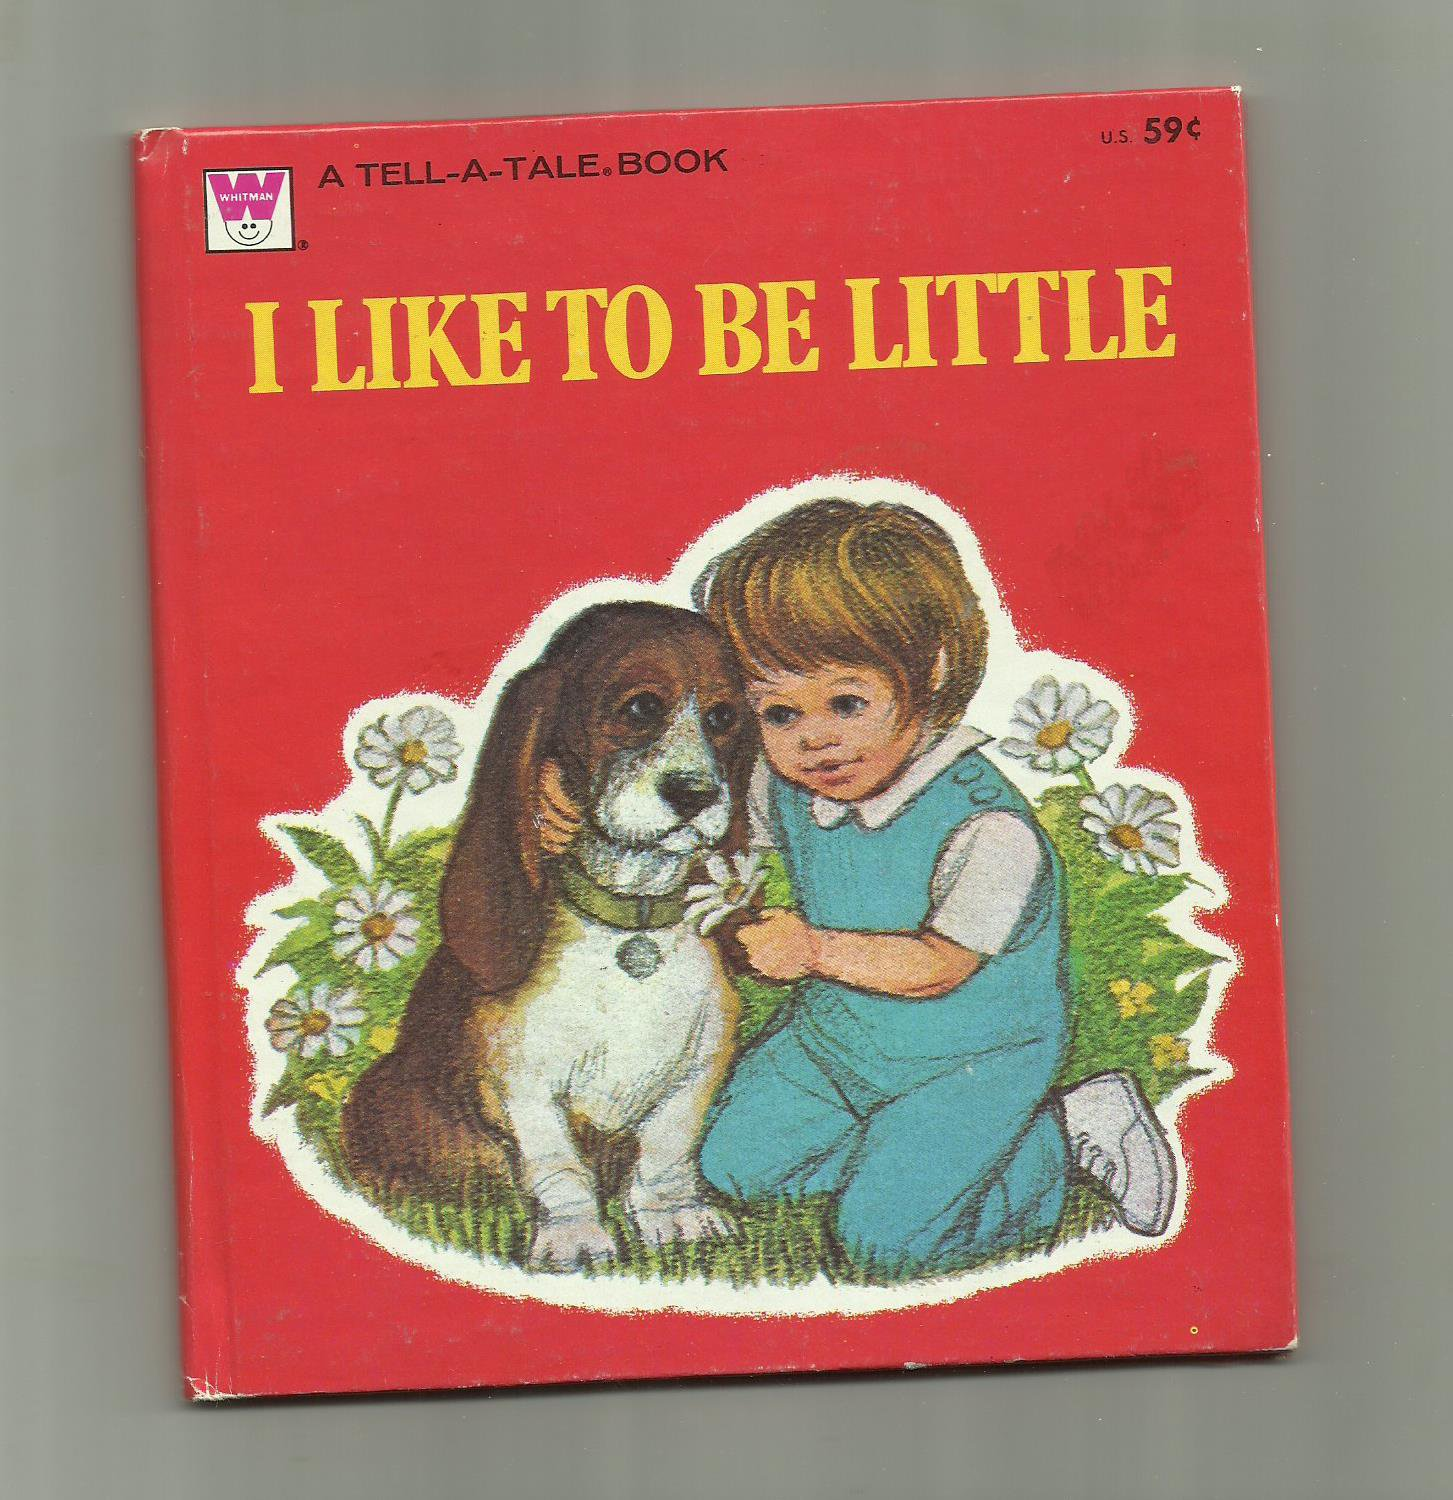 I Like To Be Little, 1976 Vintage Whitman Tell-A-Tale Children's Book